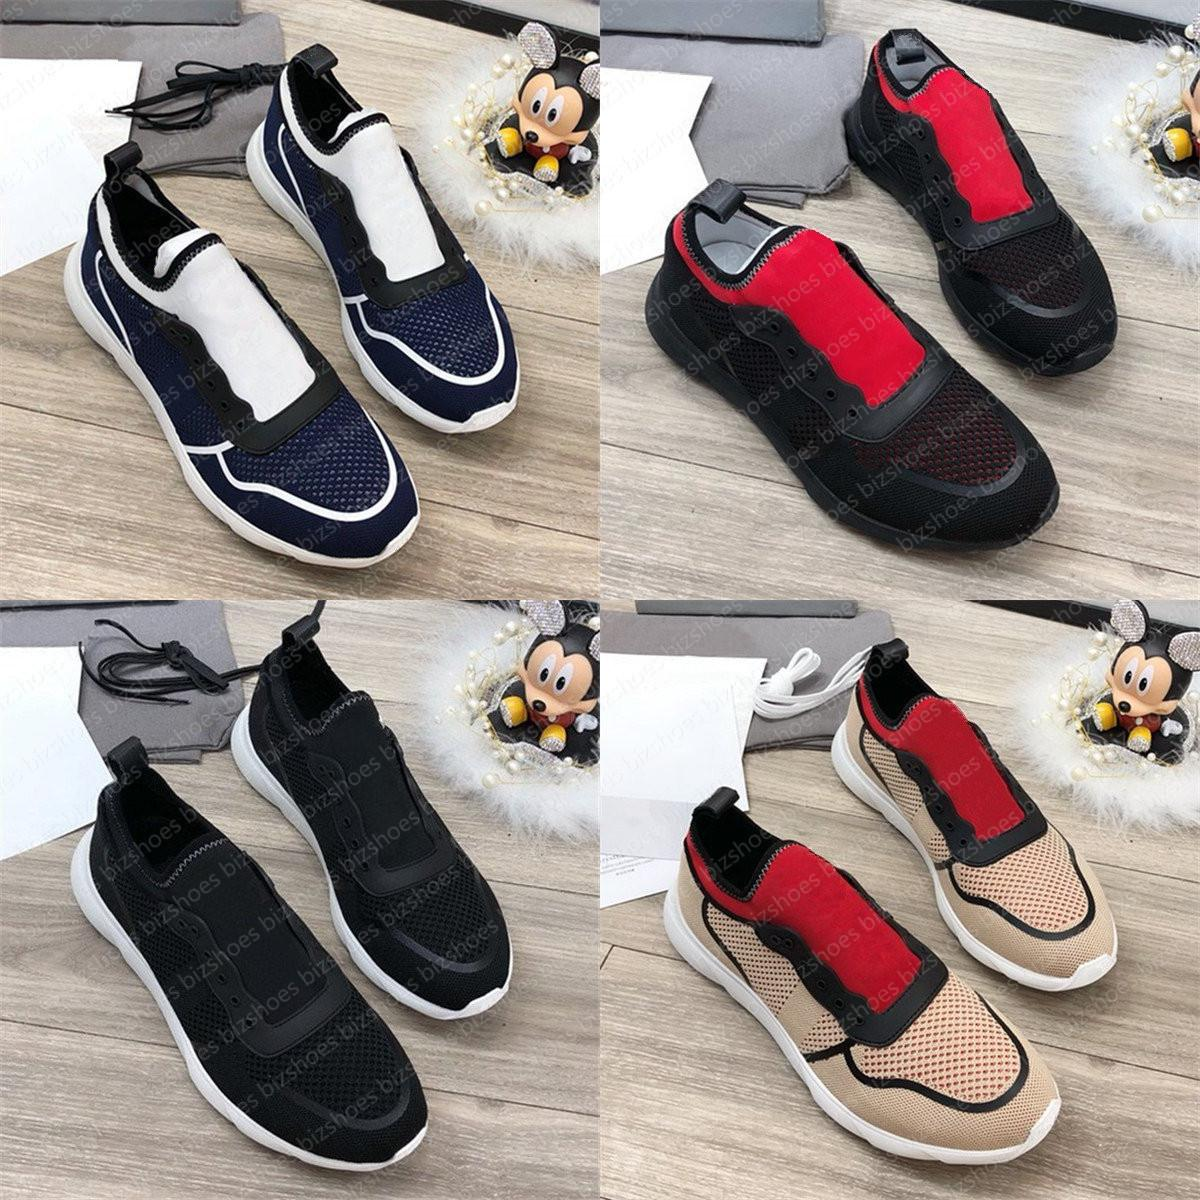 Mesh RUNNER SNEAKER Women casual shoes Fashion Luxury Designer shoe Lightweight Wholesale Stretch cotton Low top slip-on Sneakers